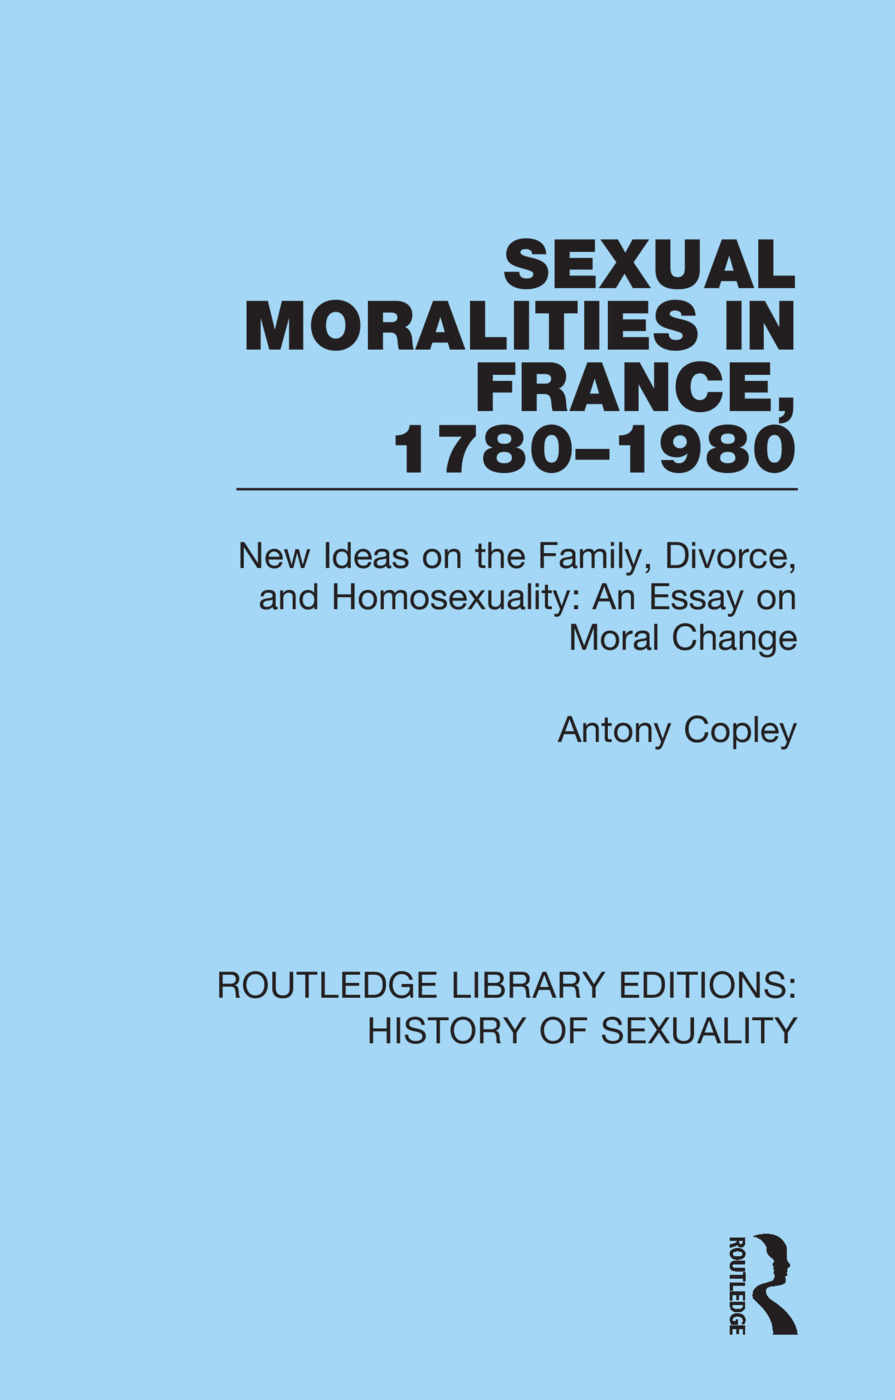 Sexual Moralities in France, 1780-1980: New Ideas on the Family, Divorce, and Homosexuality: An Essay on Moral Change book cover